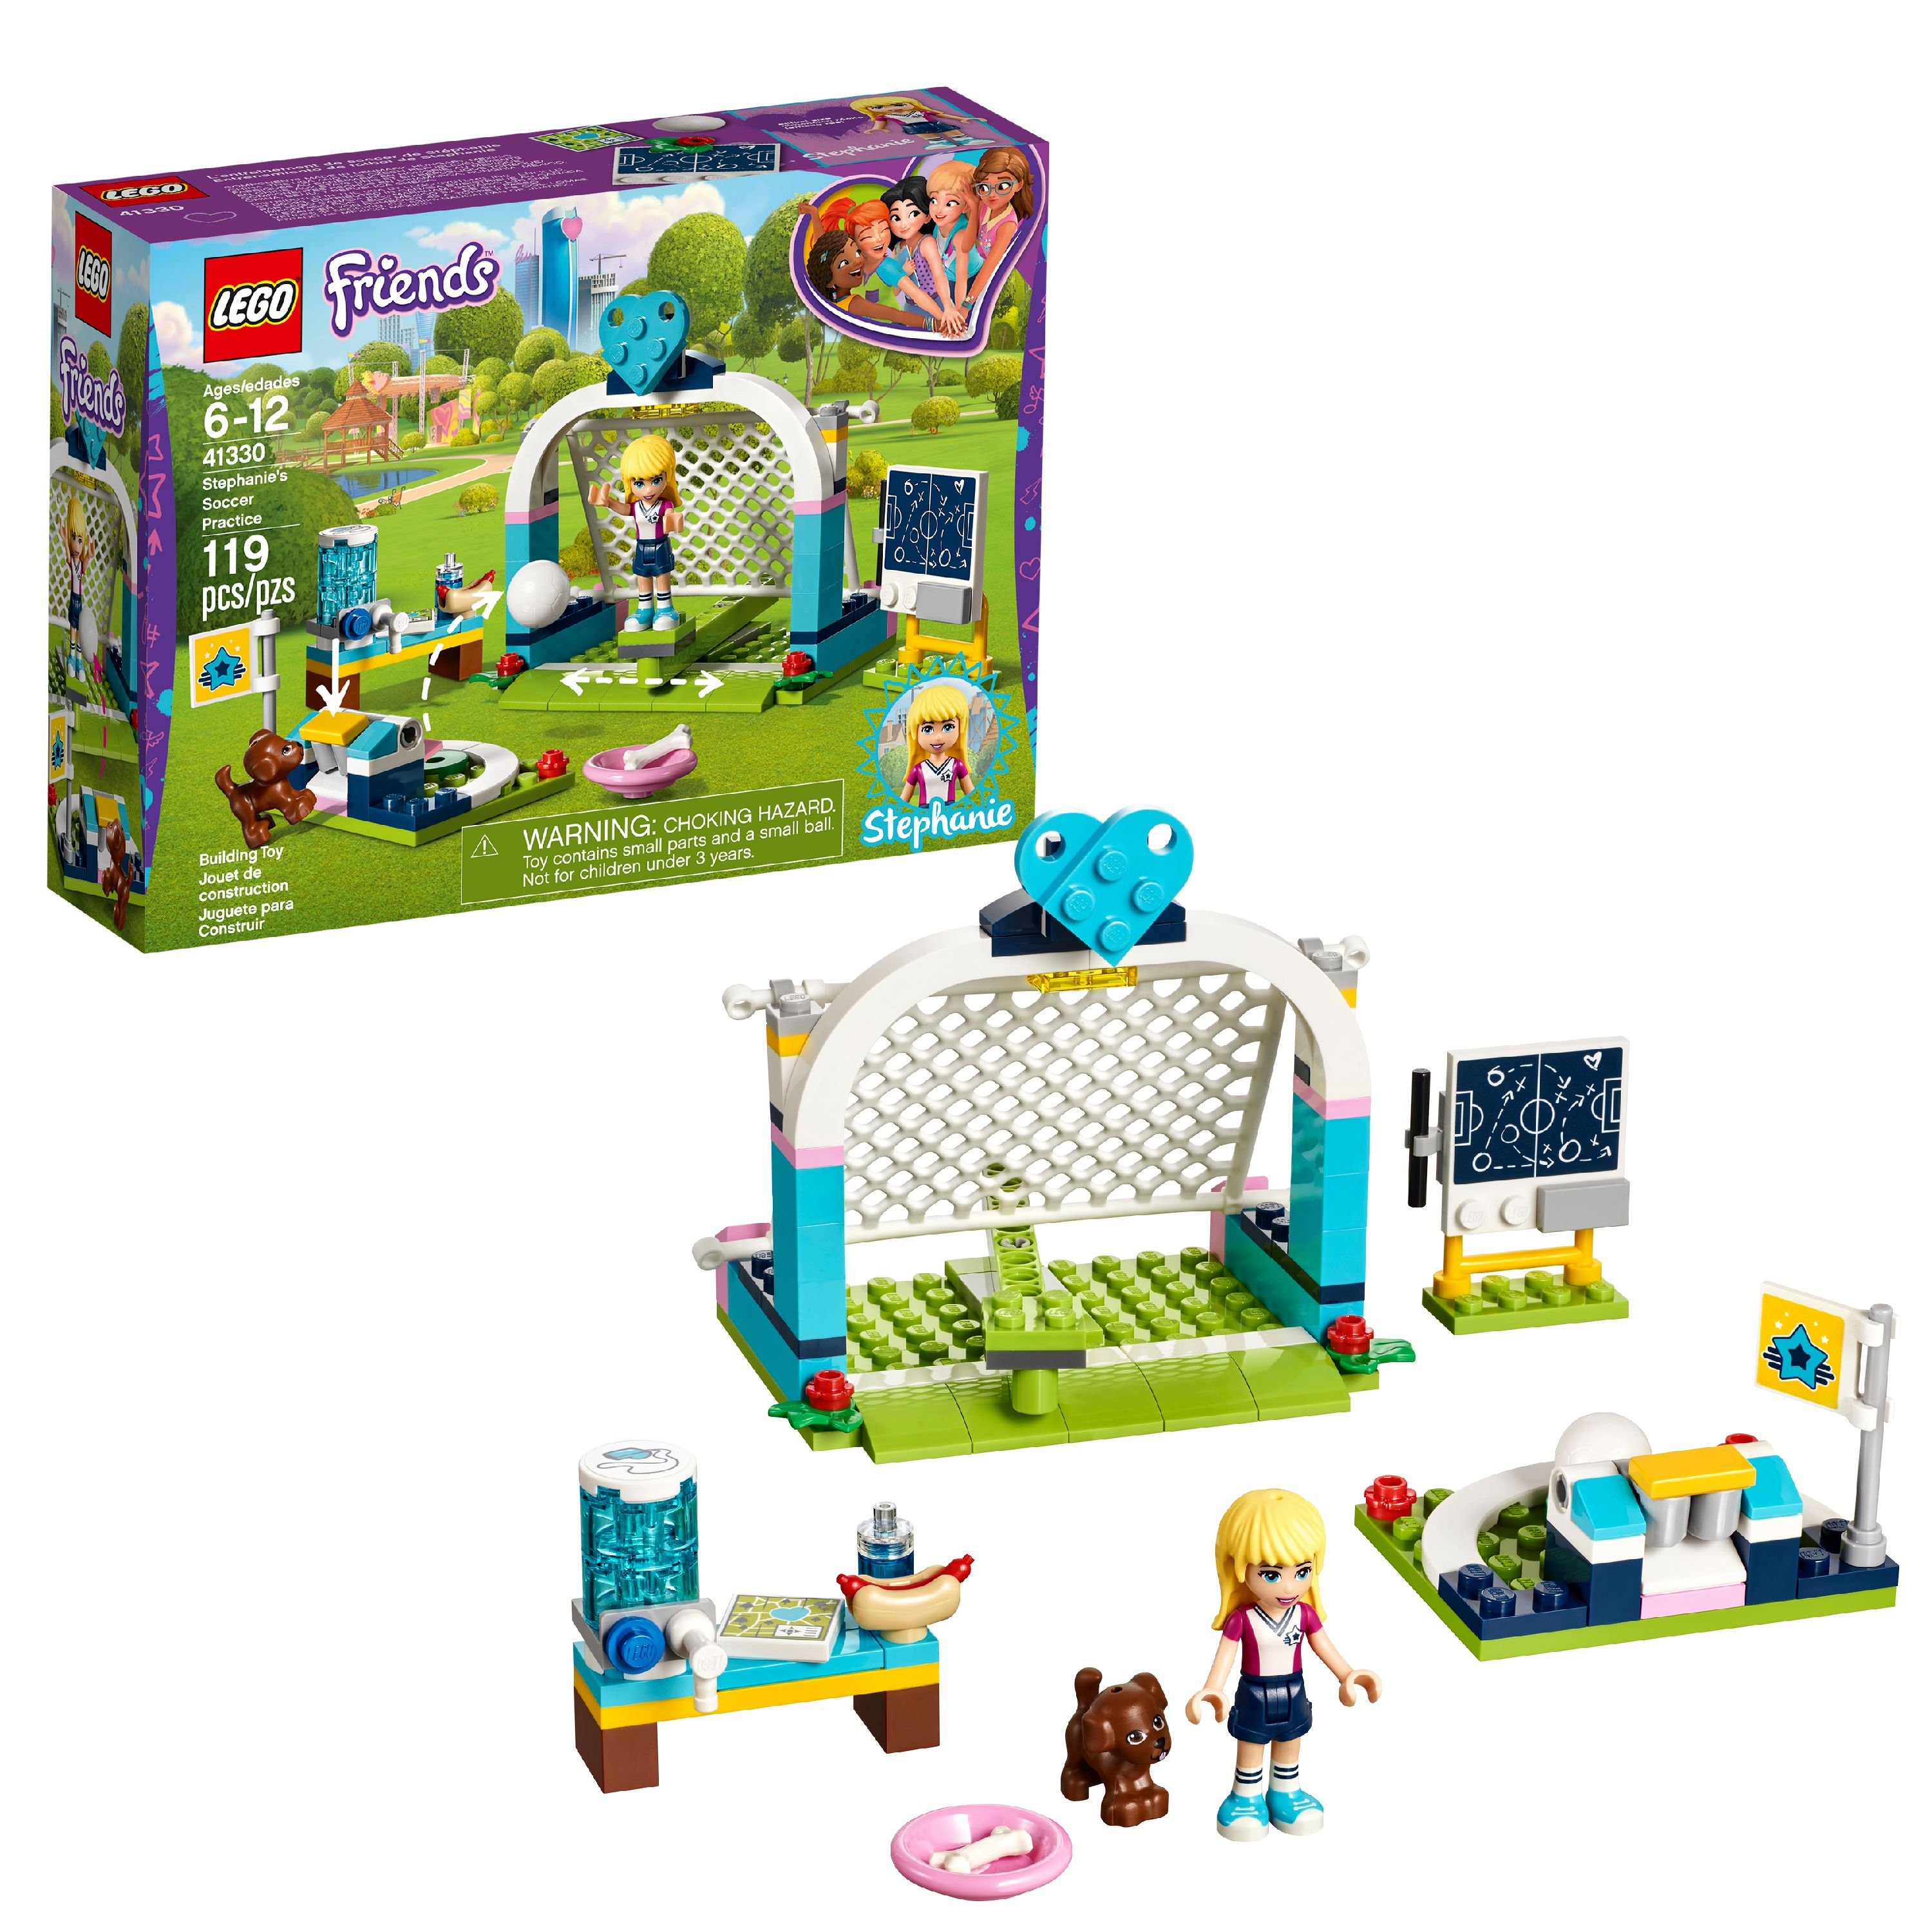 LEGO Friends Stephanie's Soccer Practice 41330 (119 Pieces)